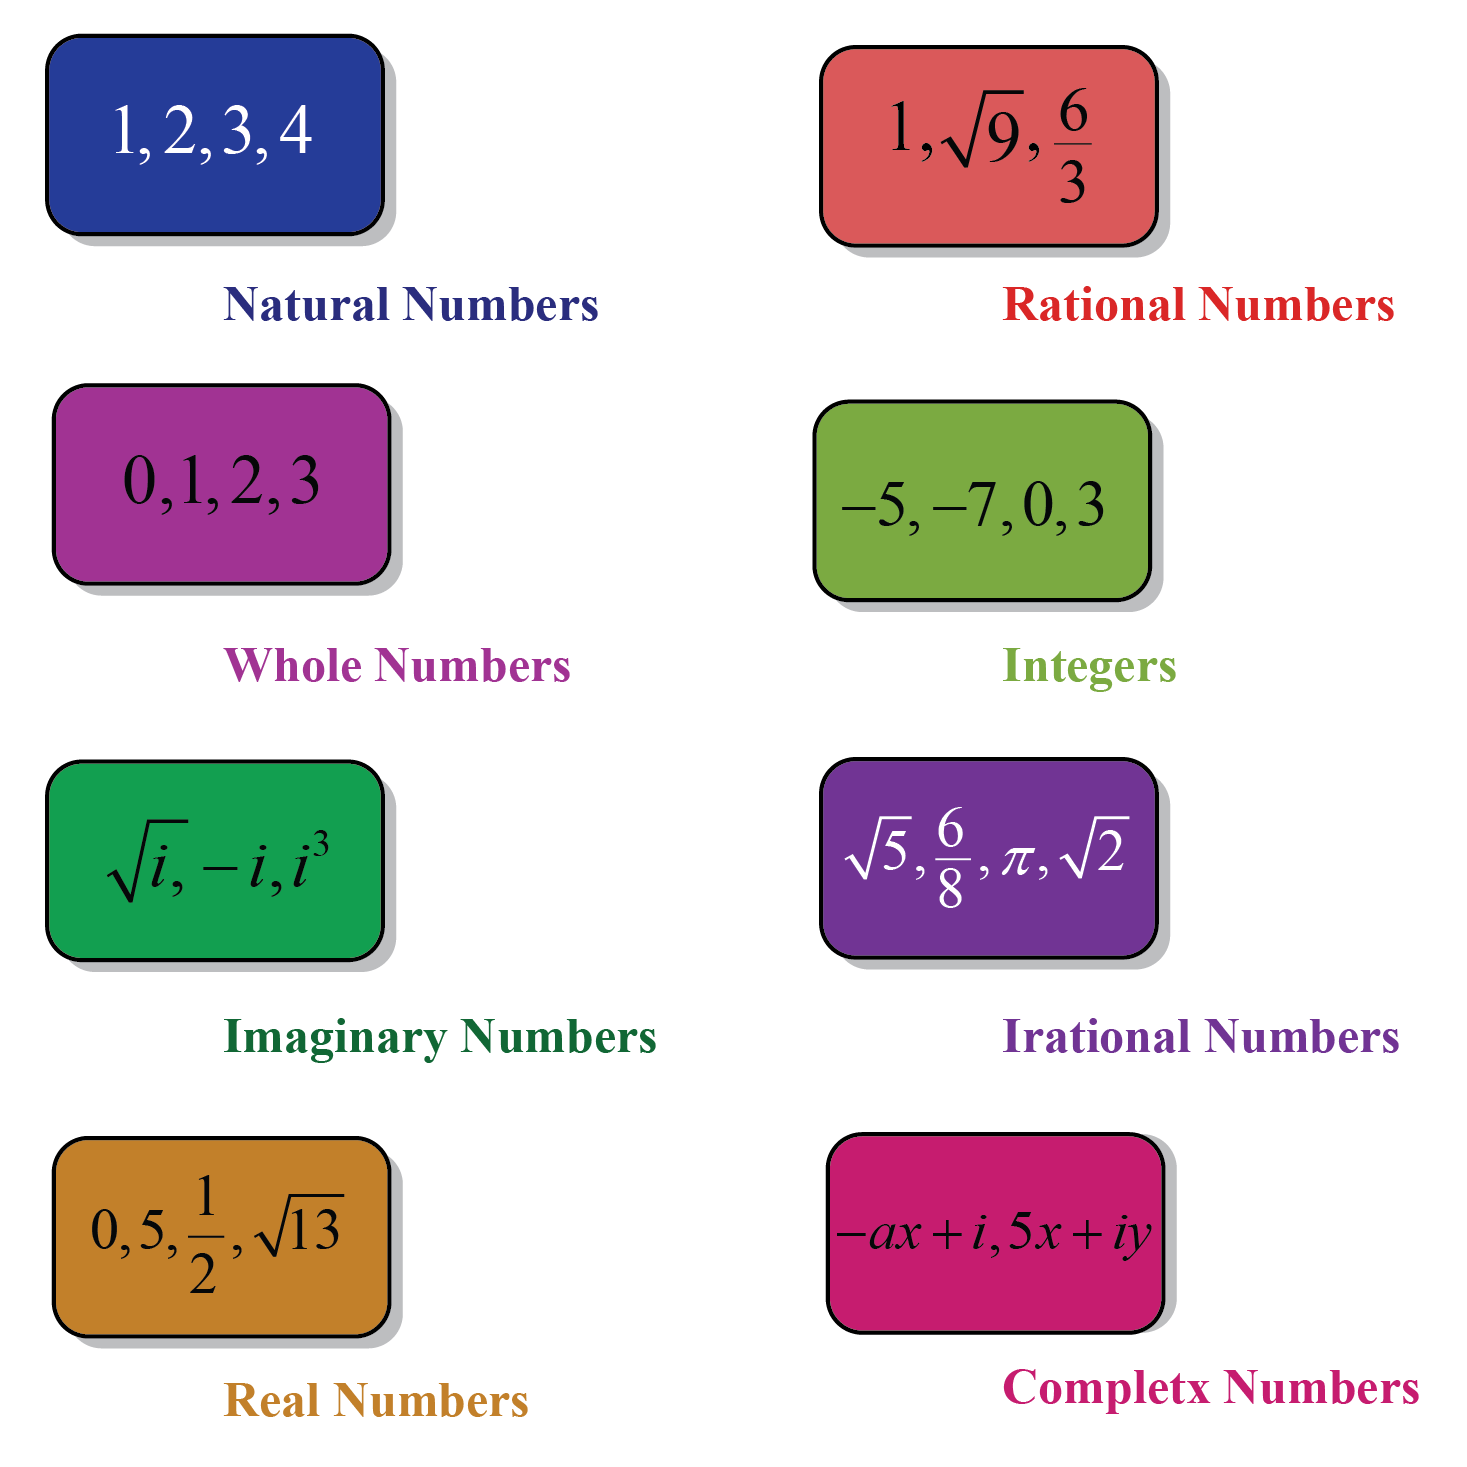 Natural numbers, Rational Numbers, Whole Numbers, Integers, Imaginary, irrational, Real and Complex Numbers